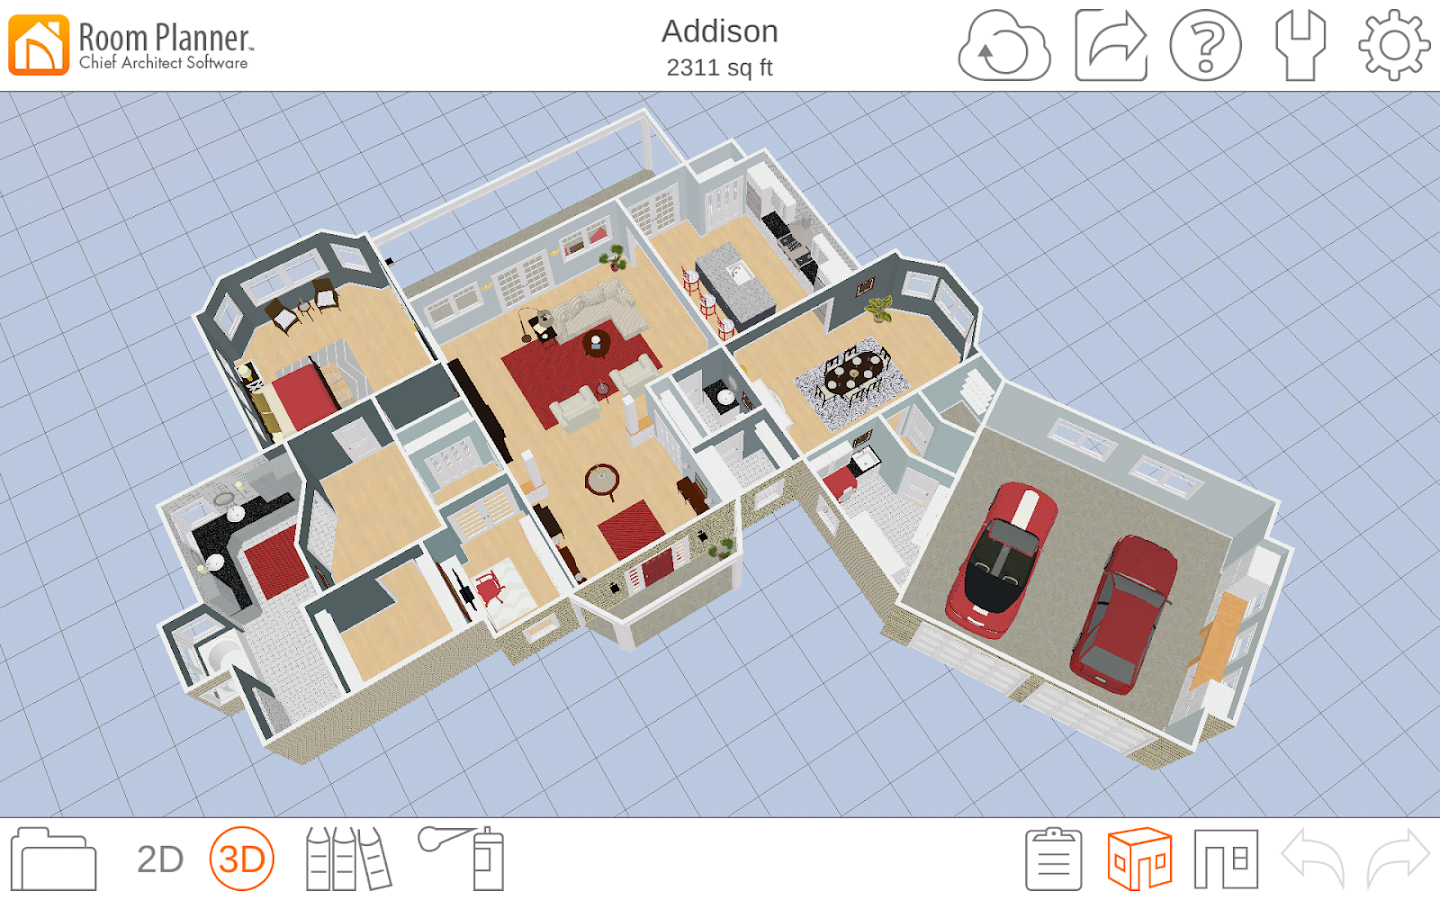 Room Planner LE Home Design Android Apps On Google Play - Room planner tools for the modern home